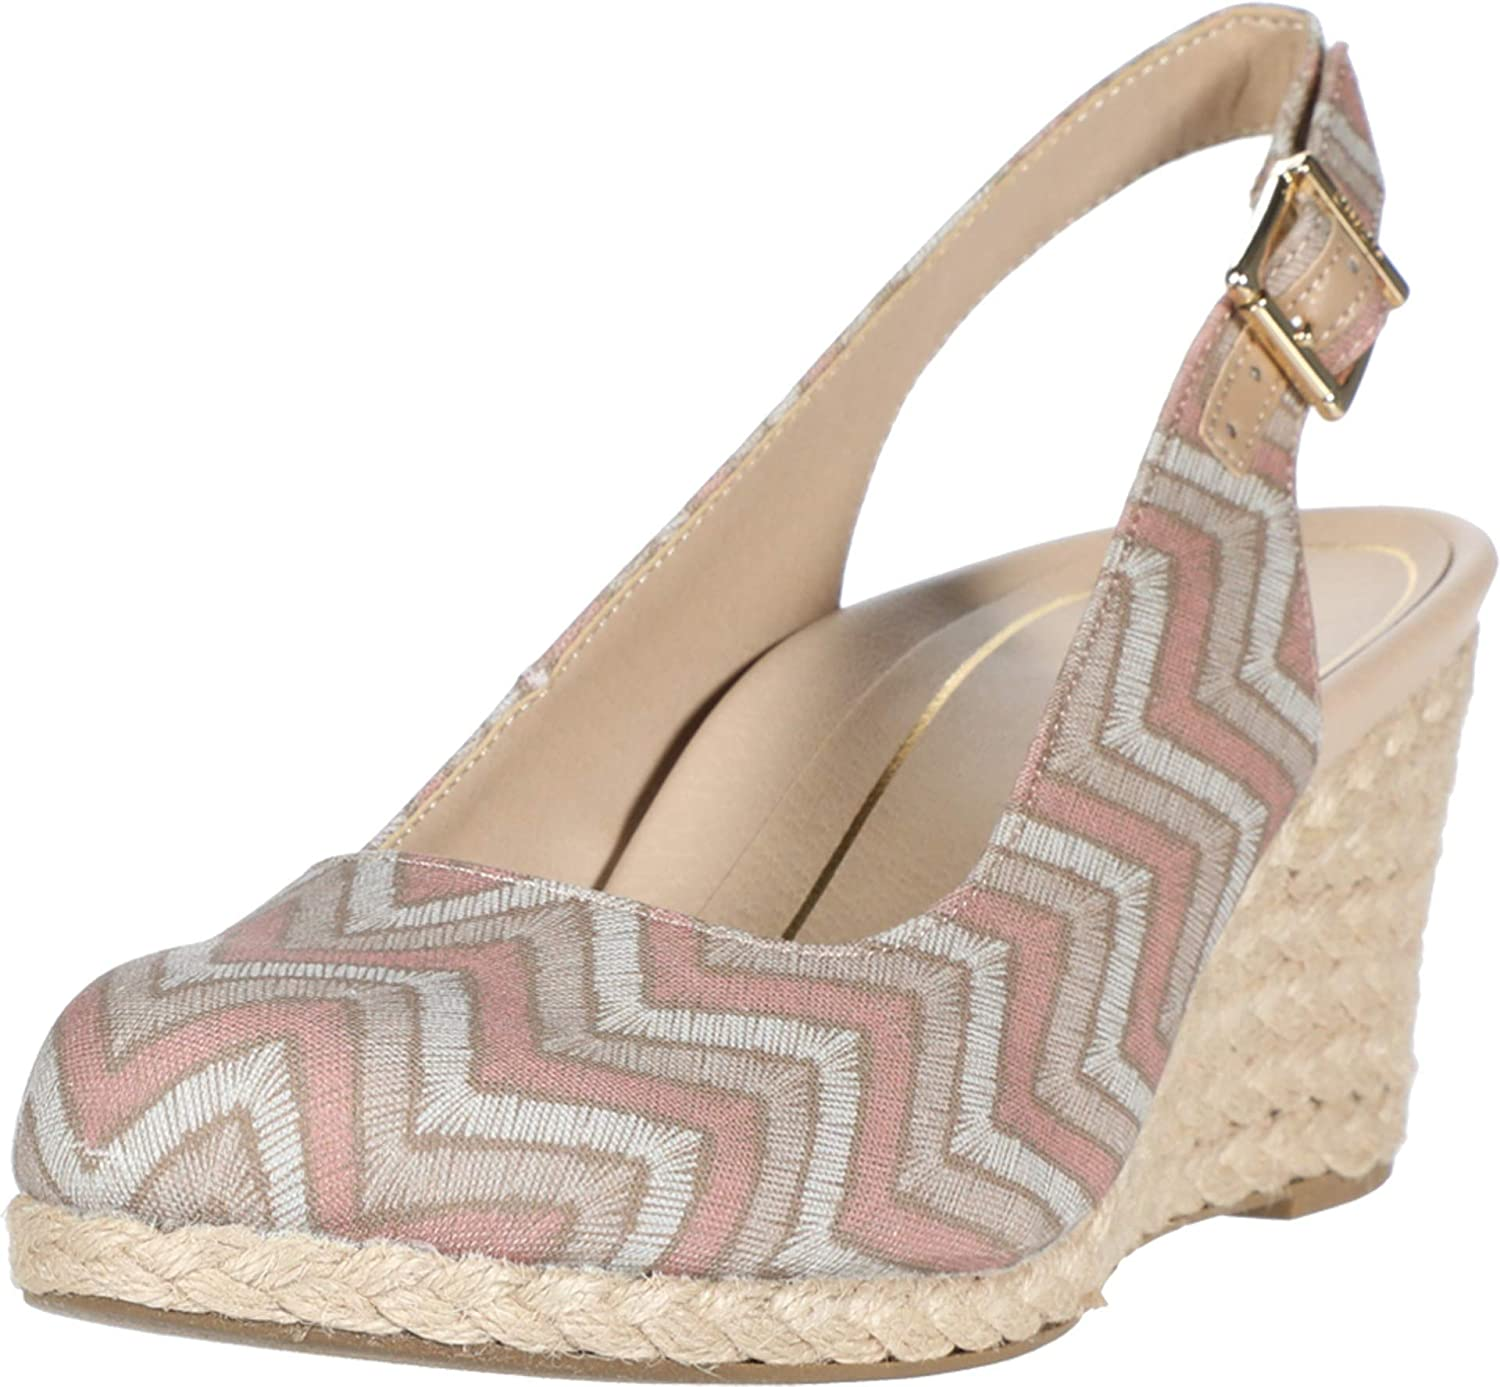 Vionic Womens Aruba Coralina Slingback Wedge Espadrille Wedges with Concealed Orthotic Arch Support